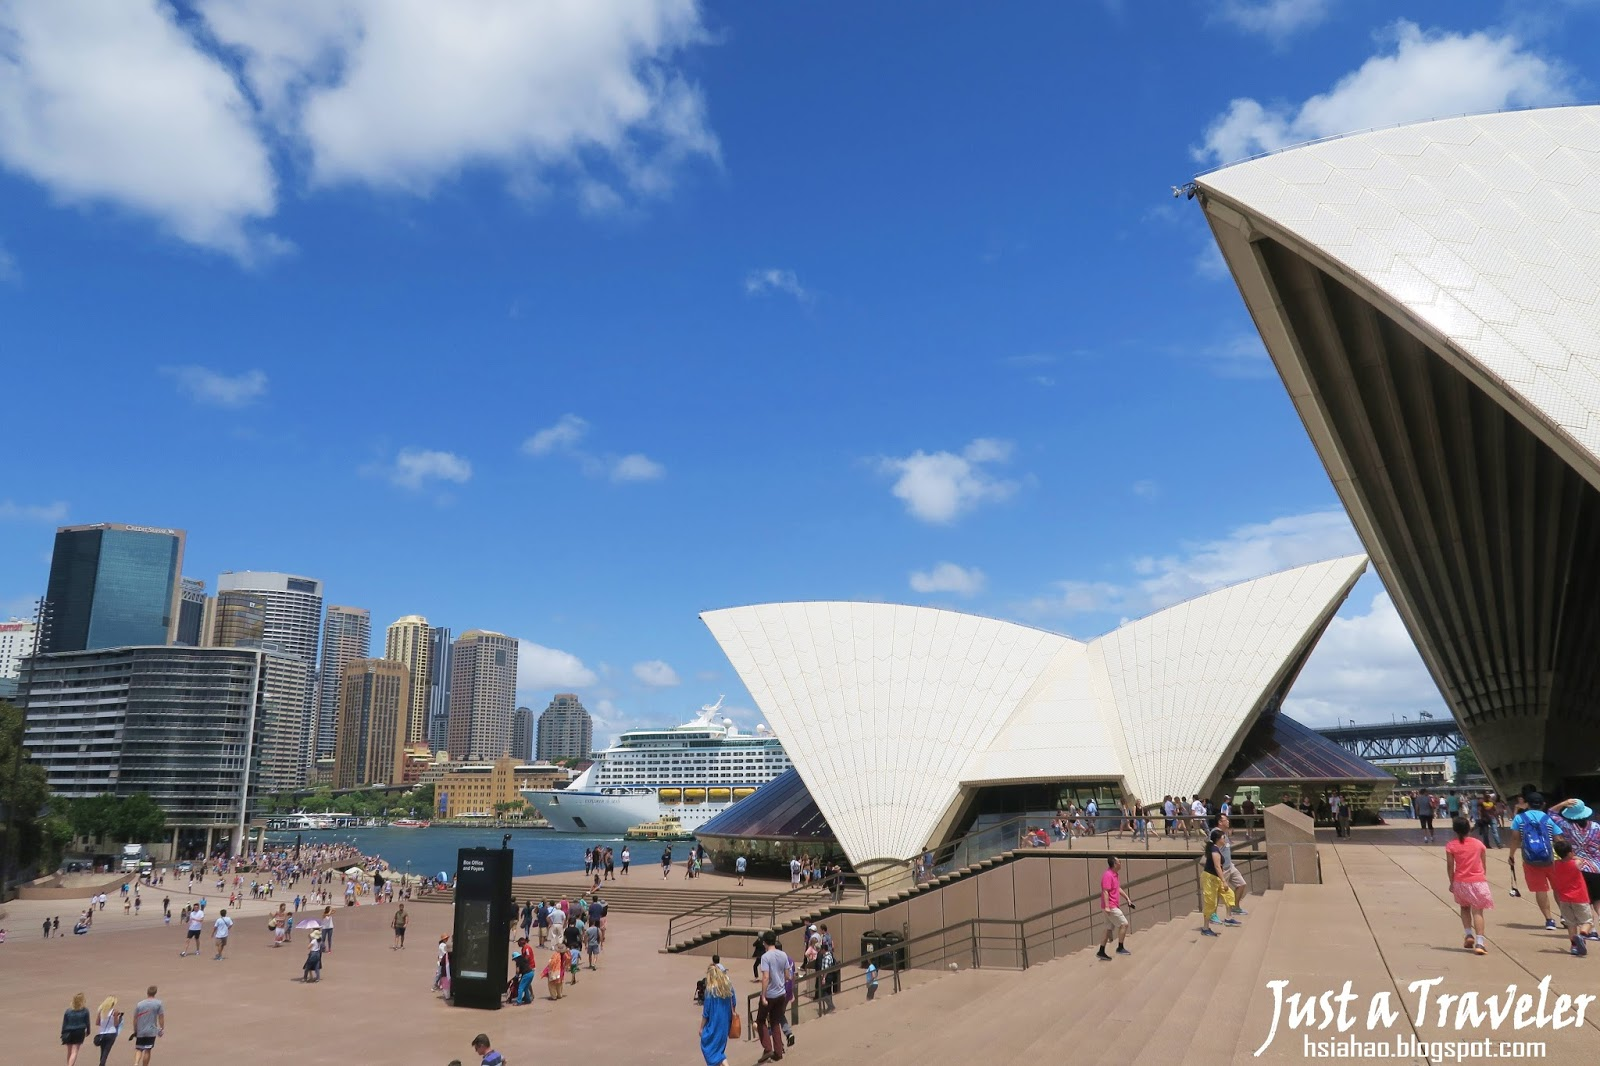 雪梨-景點-推薦-歌劇院-Opera-House-旅遊-自由行-澳洲-Sydney-Tourist-Attraction-Travel-Australia